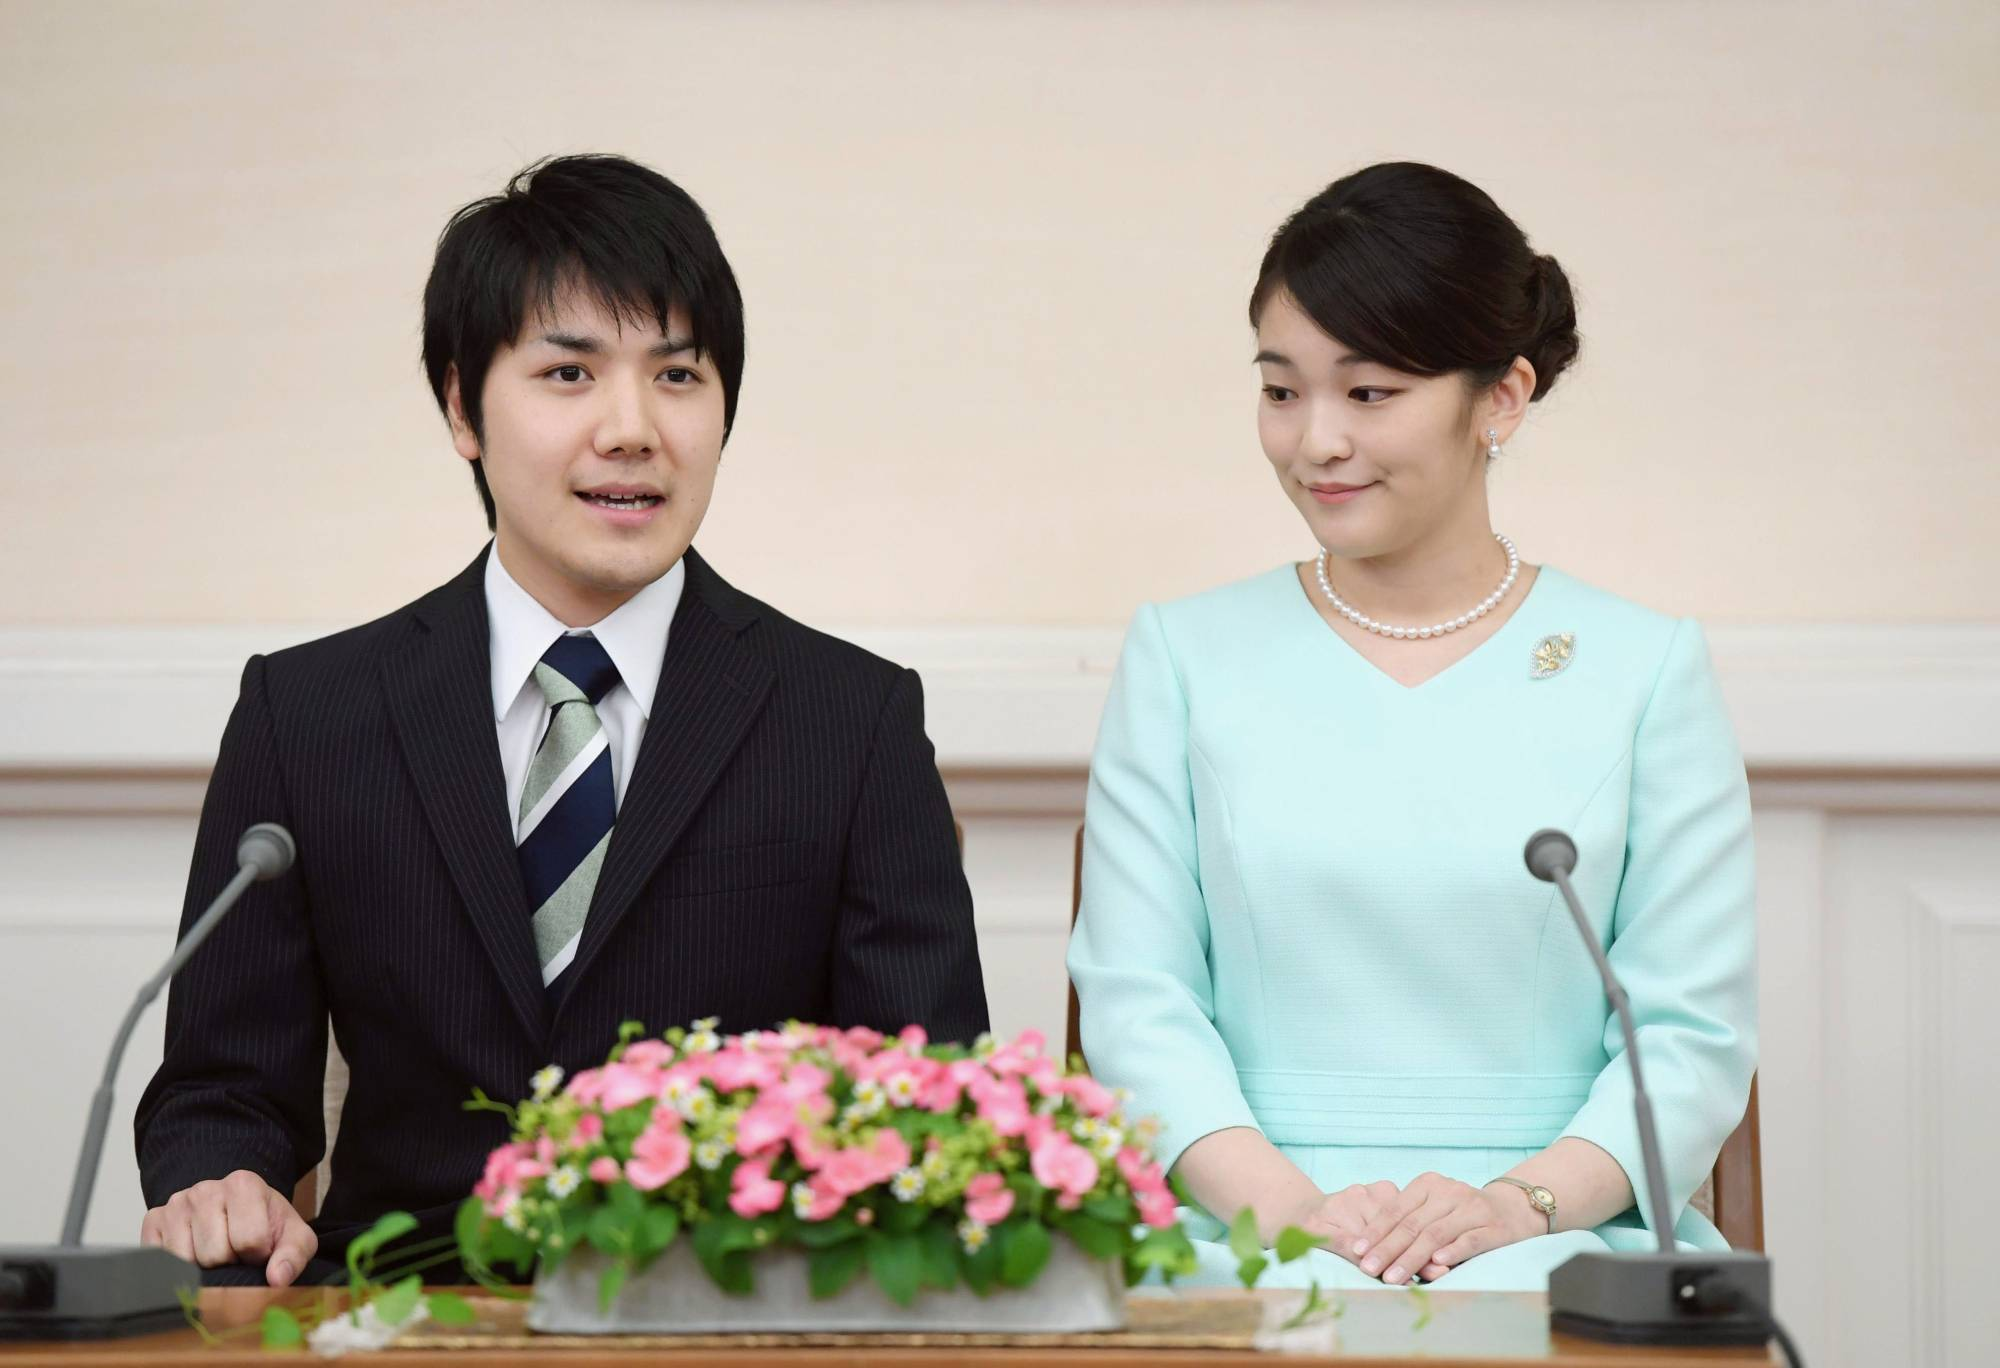 Princess Mako, the niece of Emperor Naruhito, and her long-time boyfriend, Kei Komuro, are expected to tie the knot by the end of the year. | KYODO